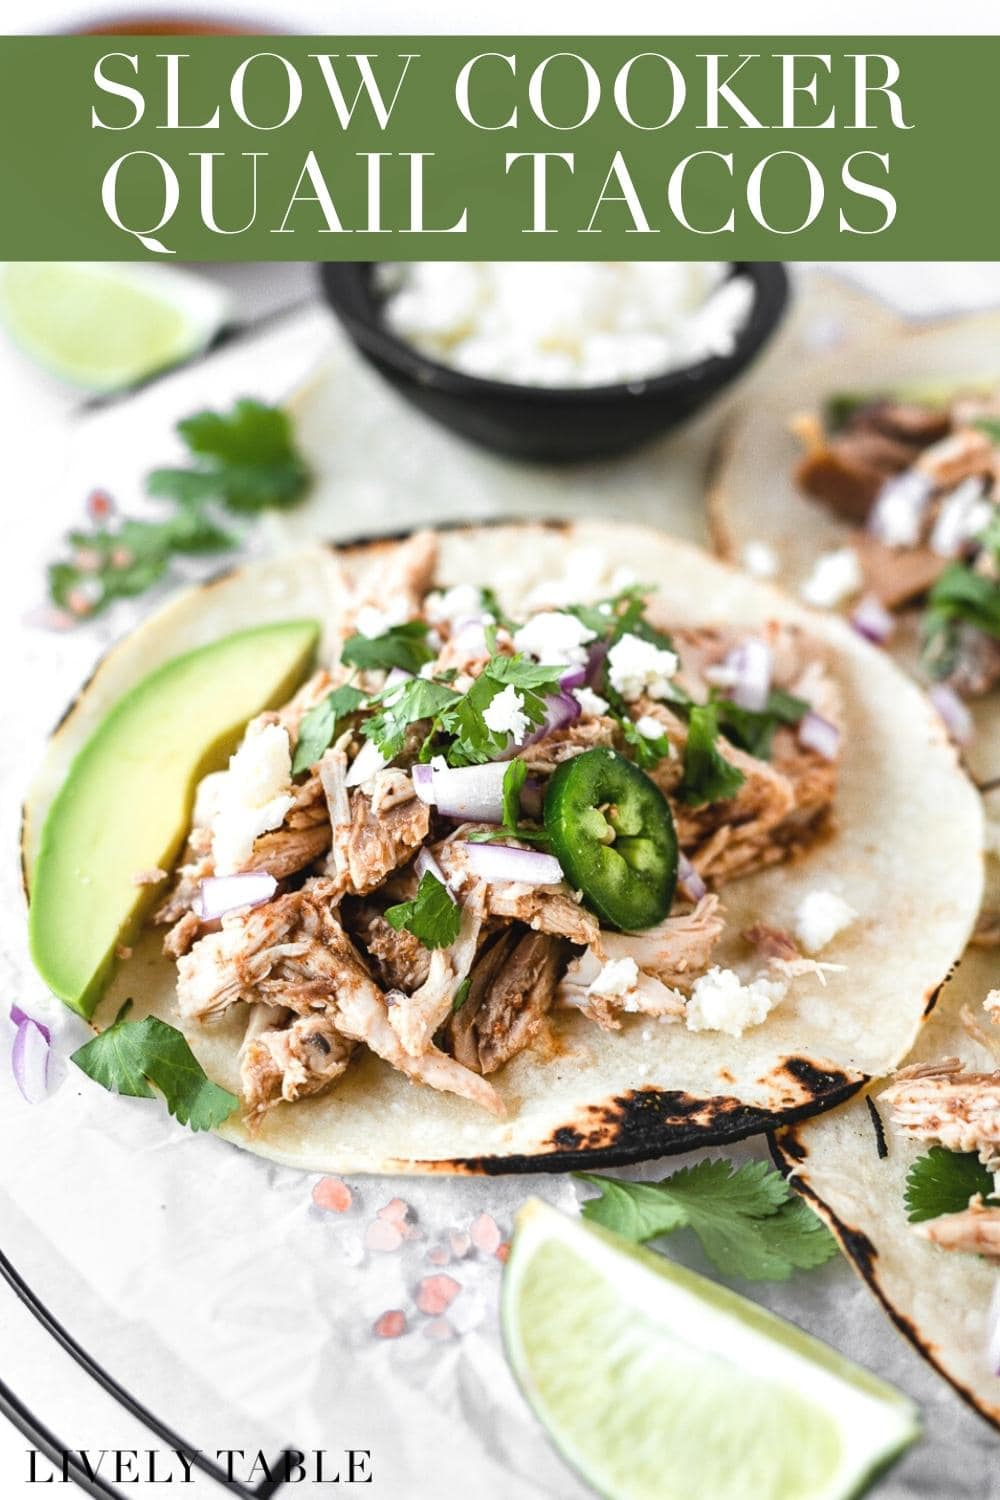 Slow cooker pulled quail street tacos are filled with deliciously tender, slow cooked quail for a healthy and flavorful Taco Tuesday meal! #glutenfree #nutfree #dairyfree #streettacos #quail #tacorecipes #tacos #texmex #crockpot #slowcooker #easyrecipes